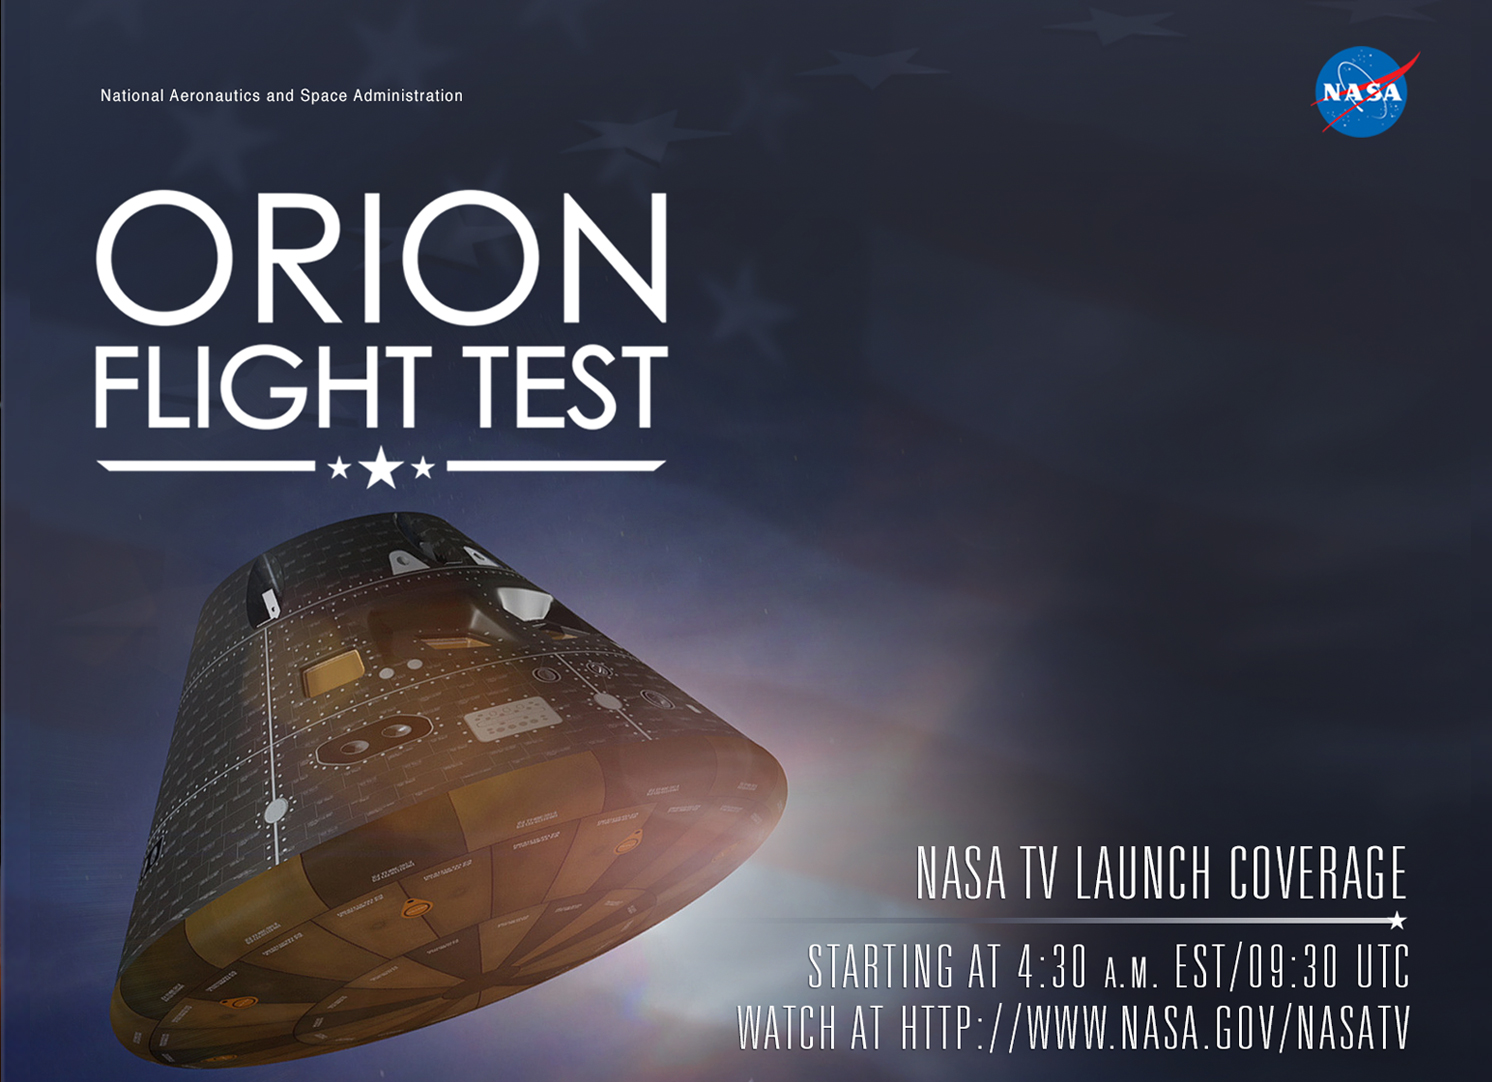 Social media shareable designed for launch coverage of Orion's first flight